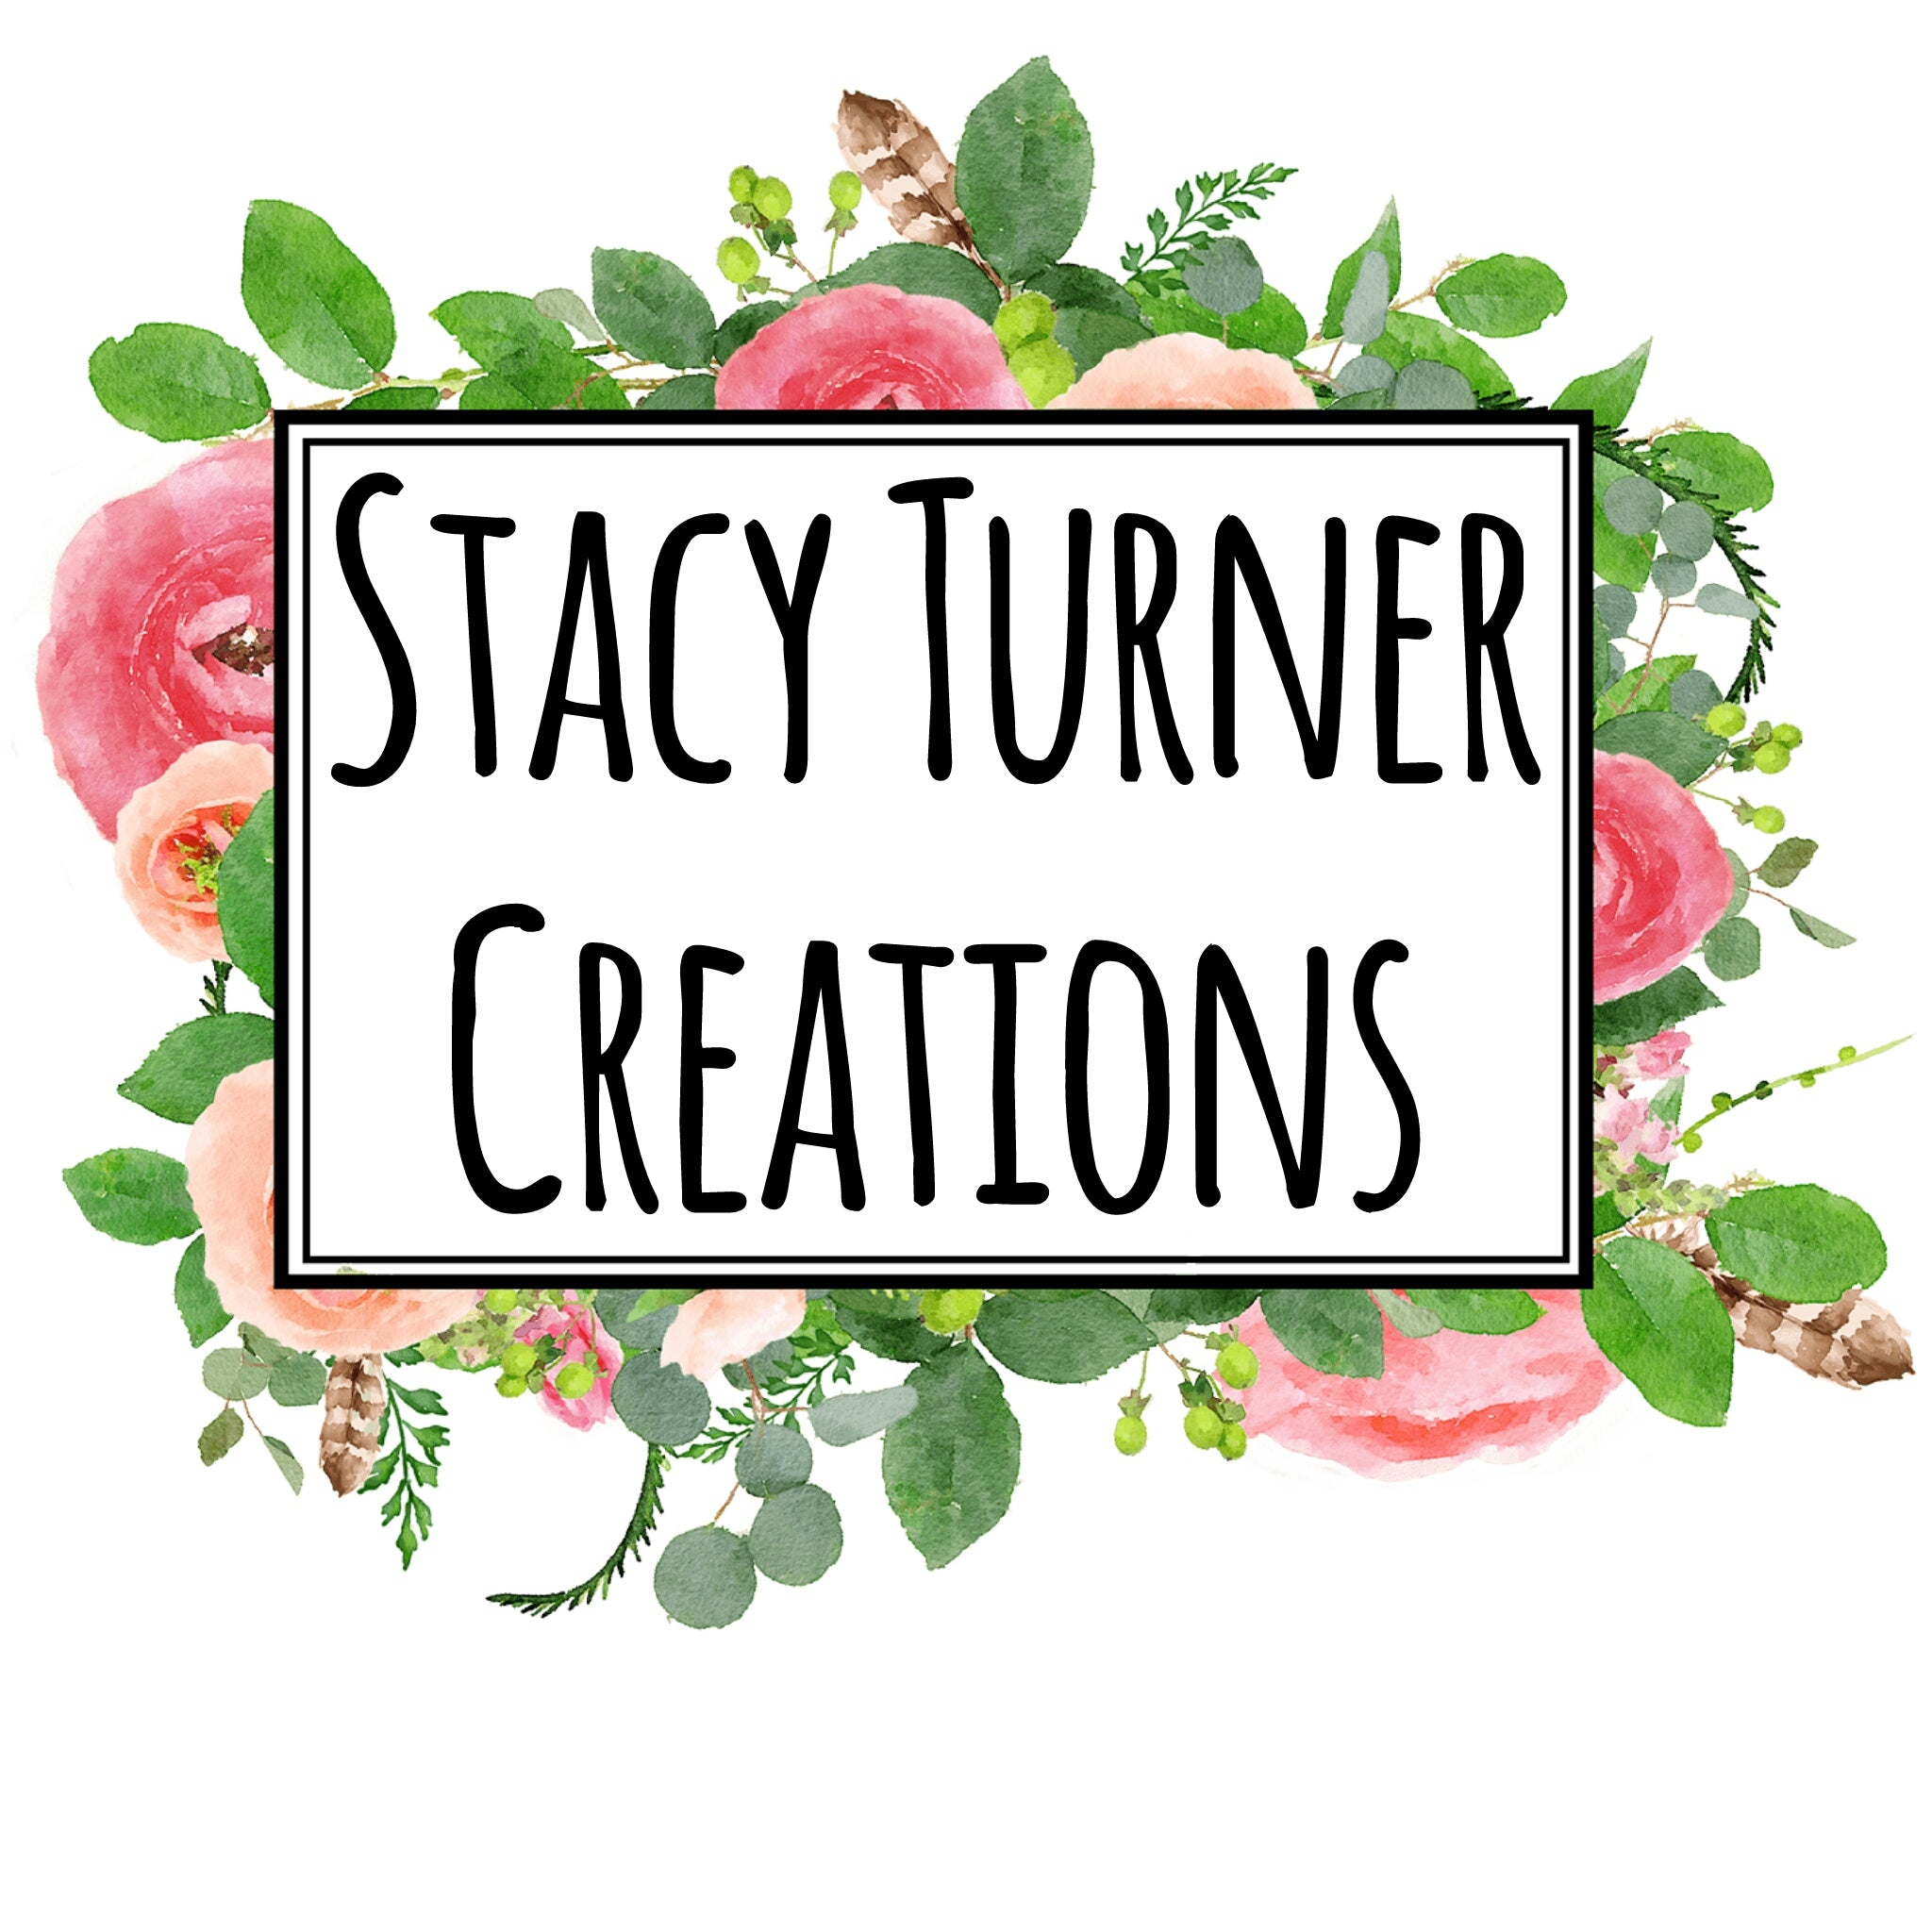 Stacy Turner Creations